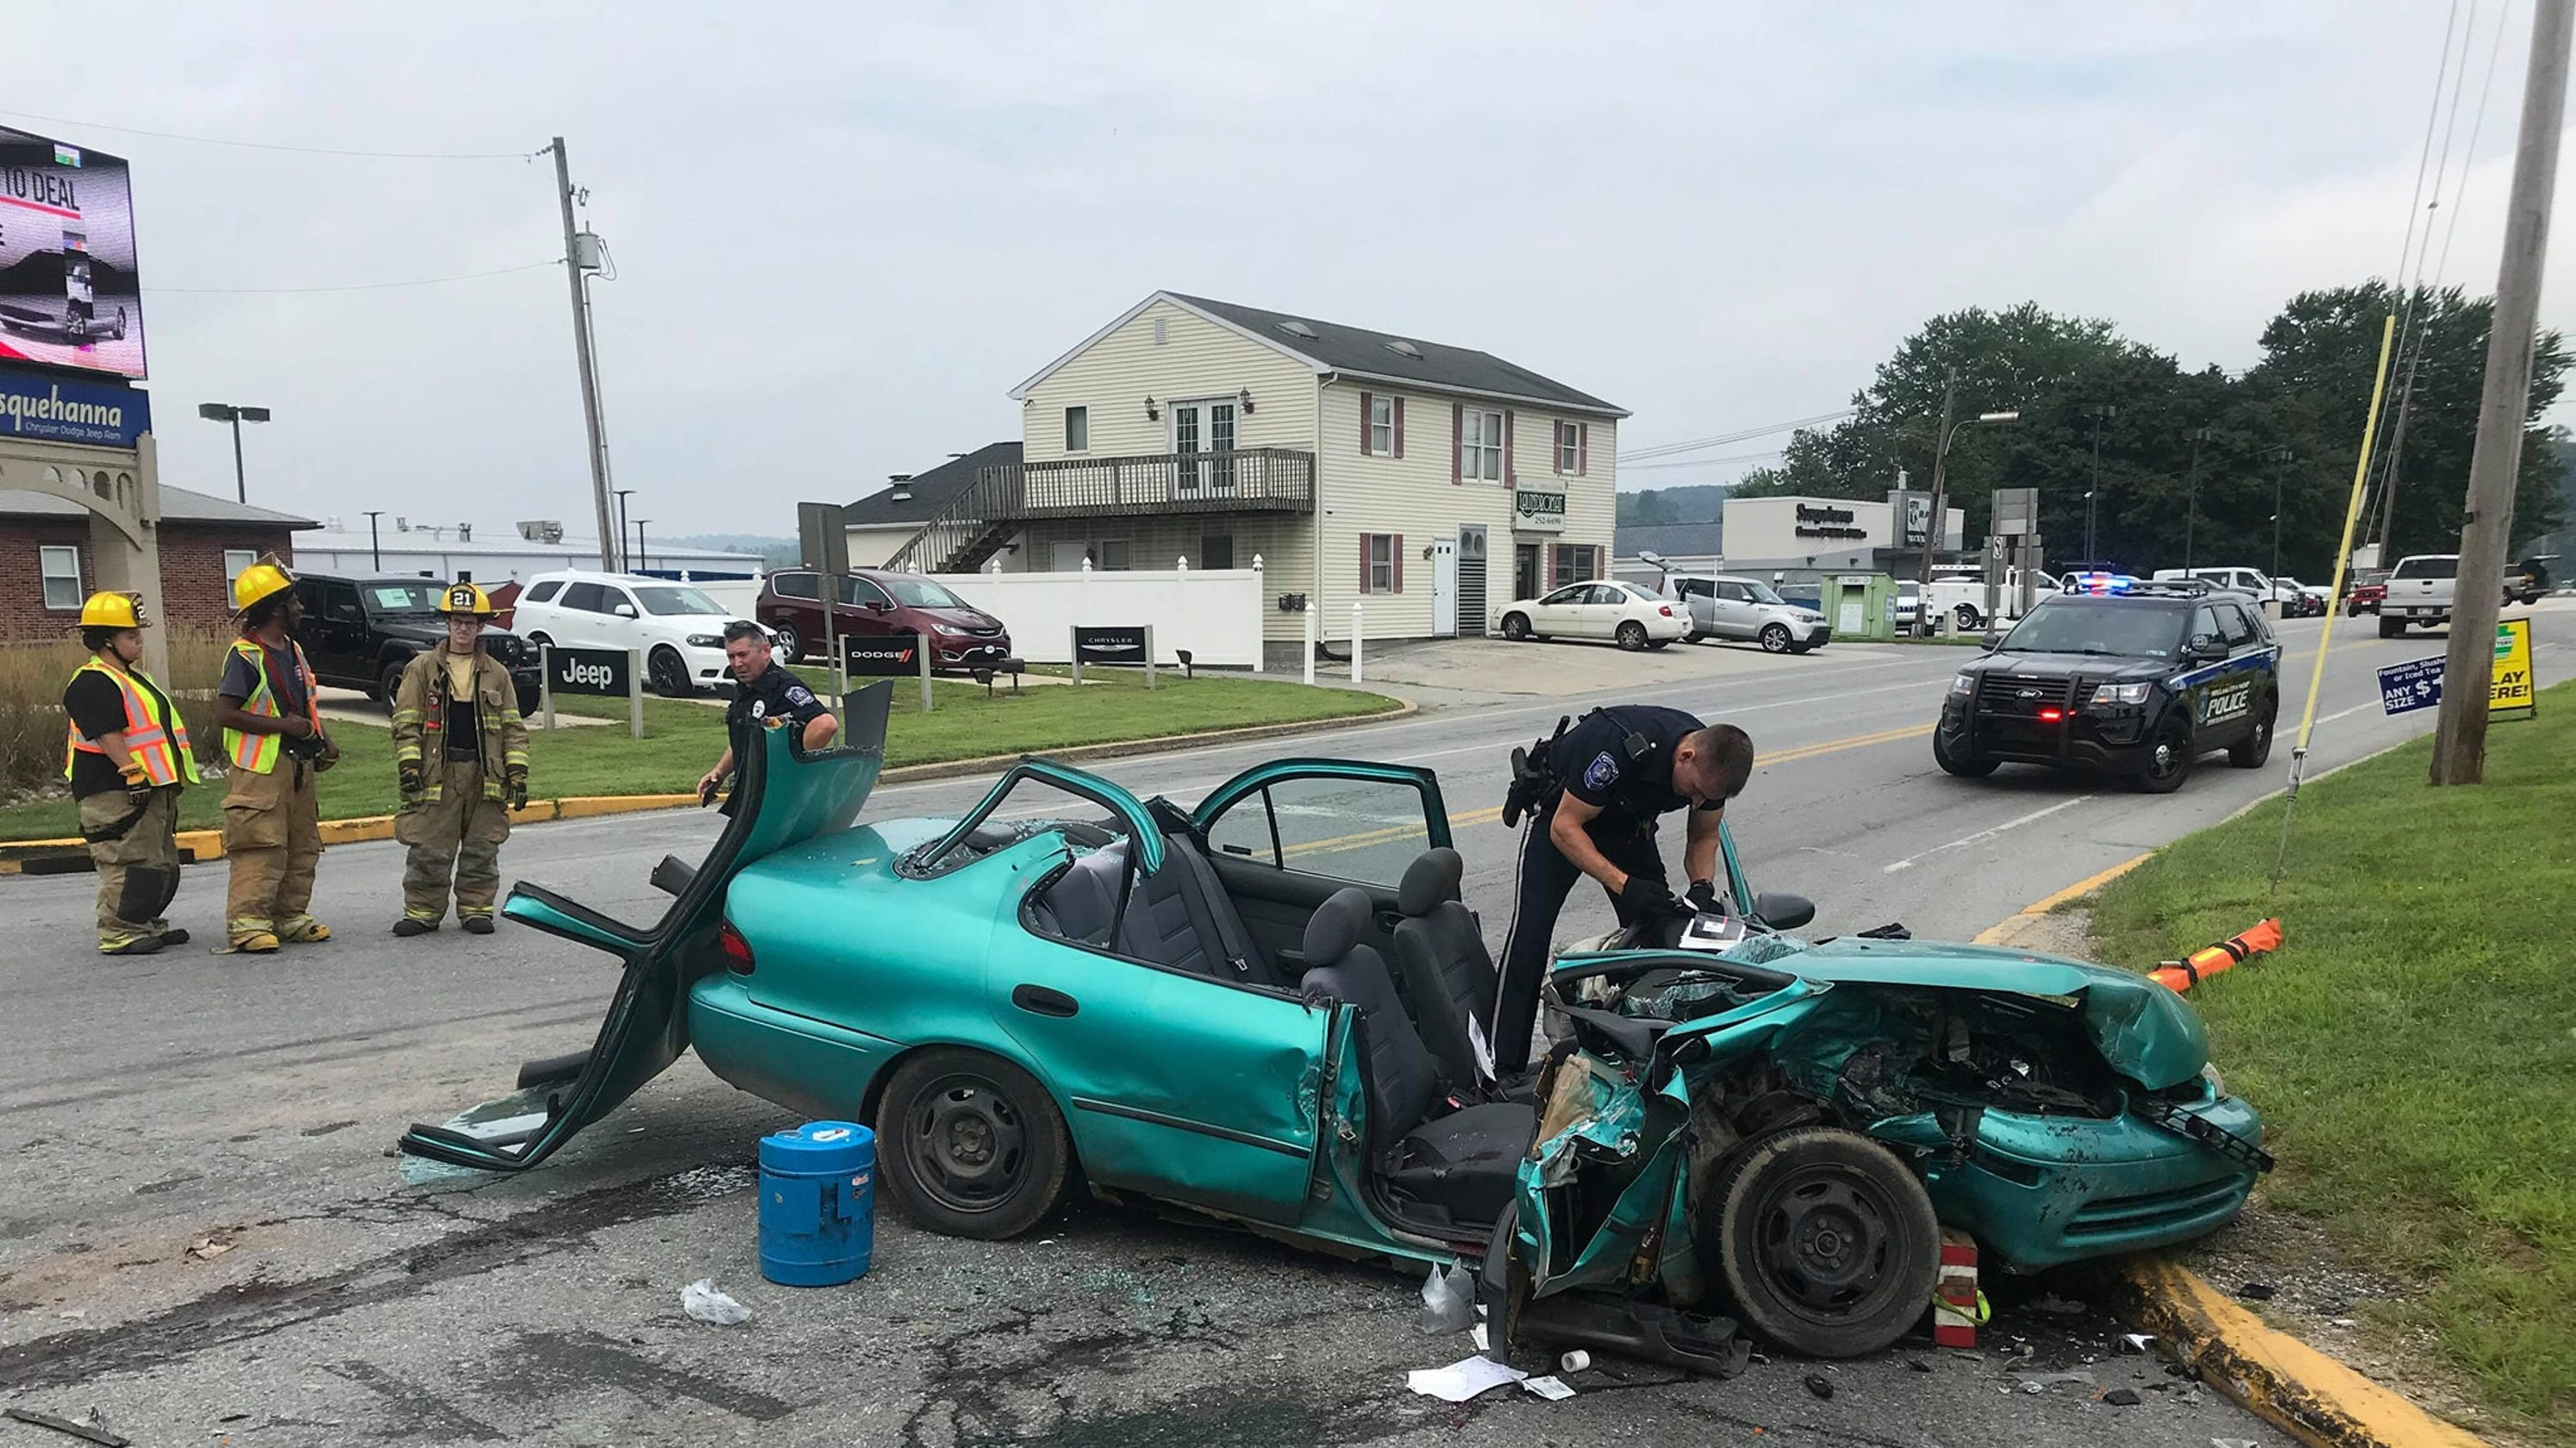 Two-vehicle crash critically injures one in Wrightsville